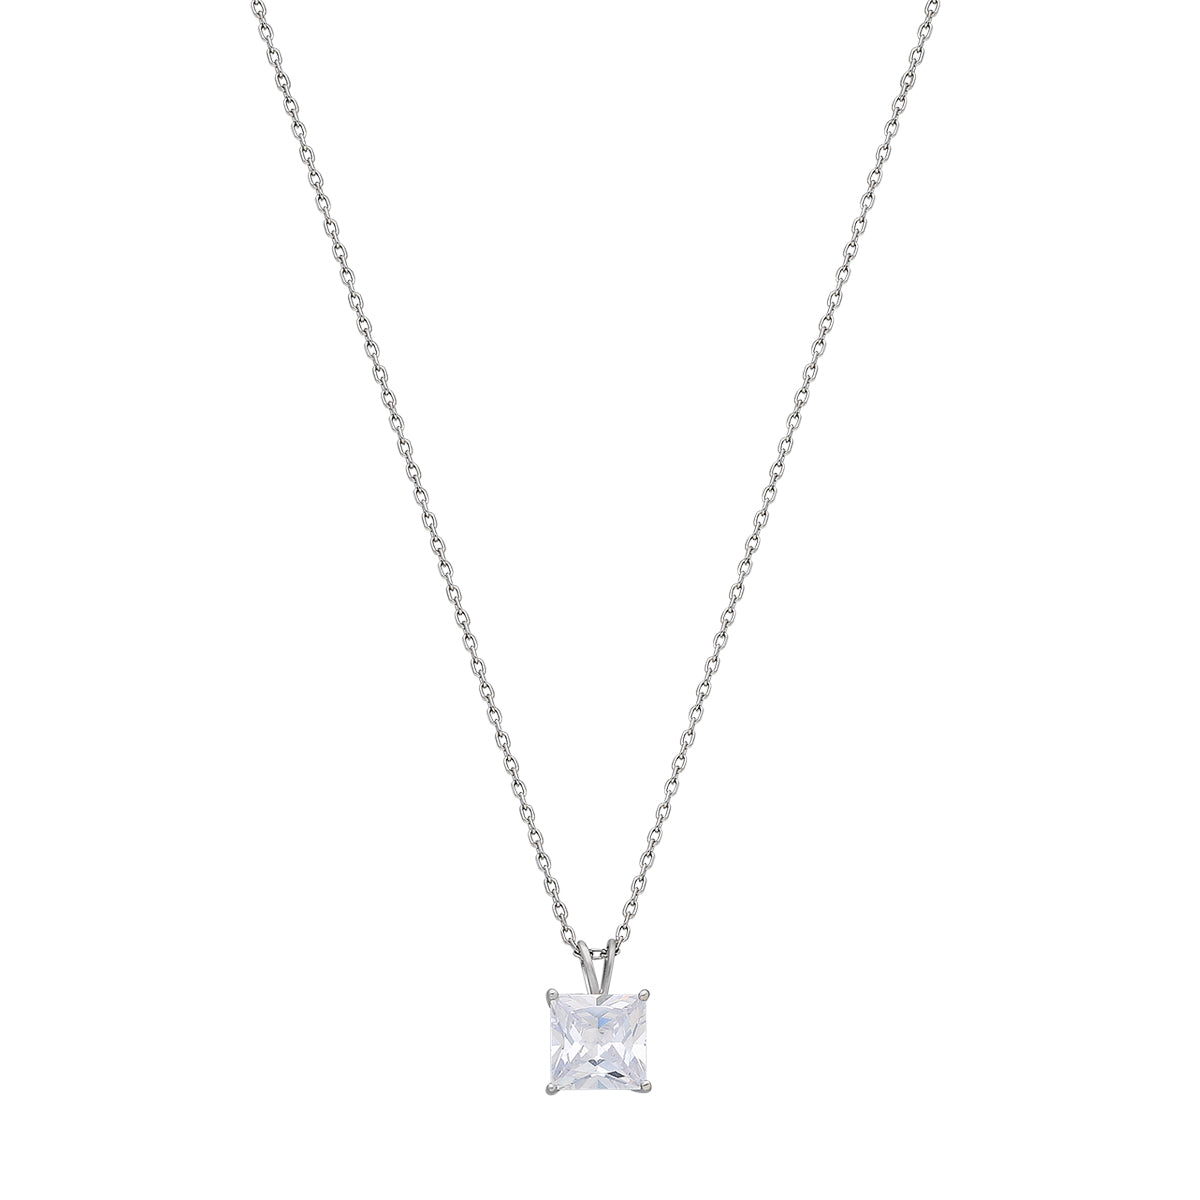 925 Sterling silver solitaire necklace.